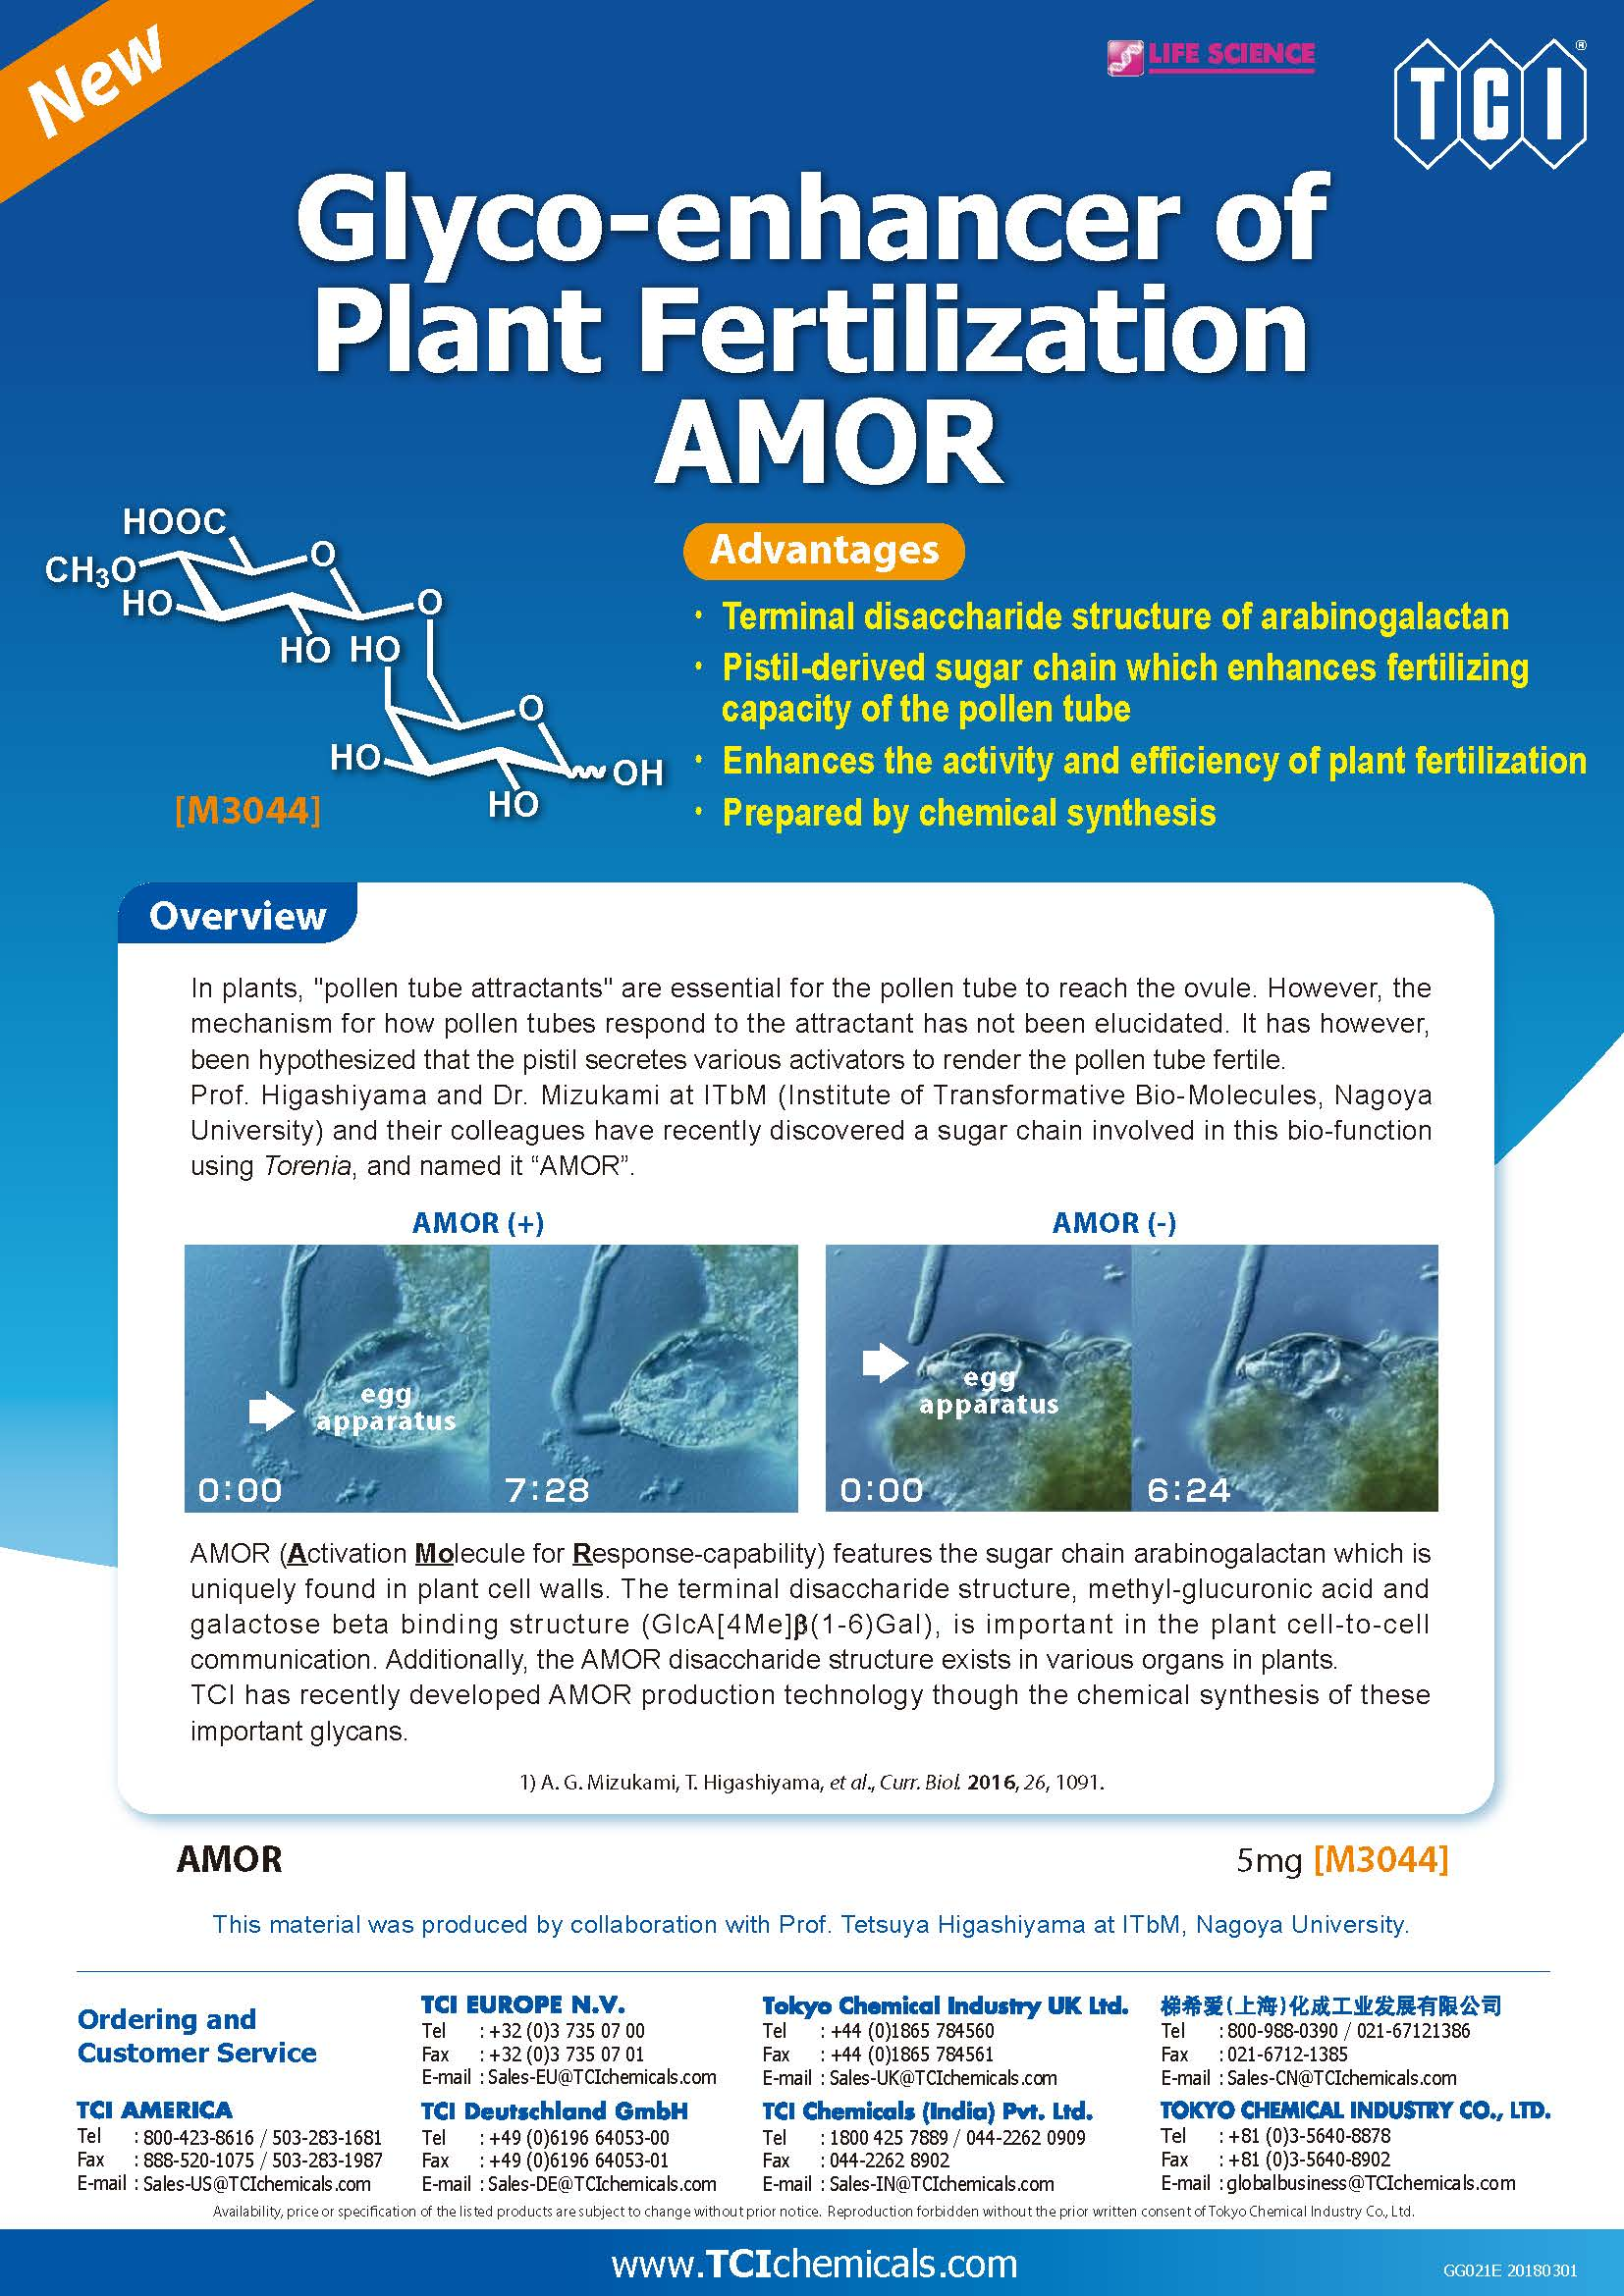 http://www.itbm.nagoya-u.ac.jp/en/news/Glyco-enhancer%20of%20Plant%20Fertilization%20AMOR%280301%29.jpg